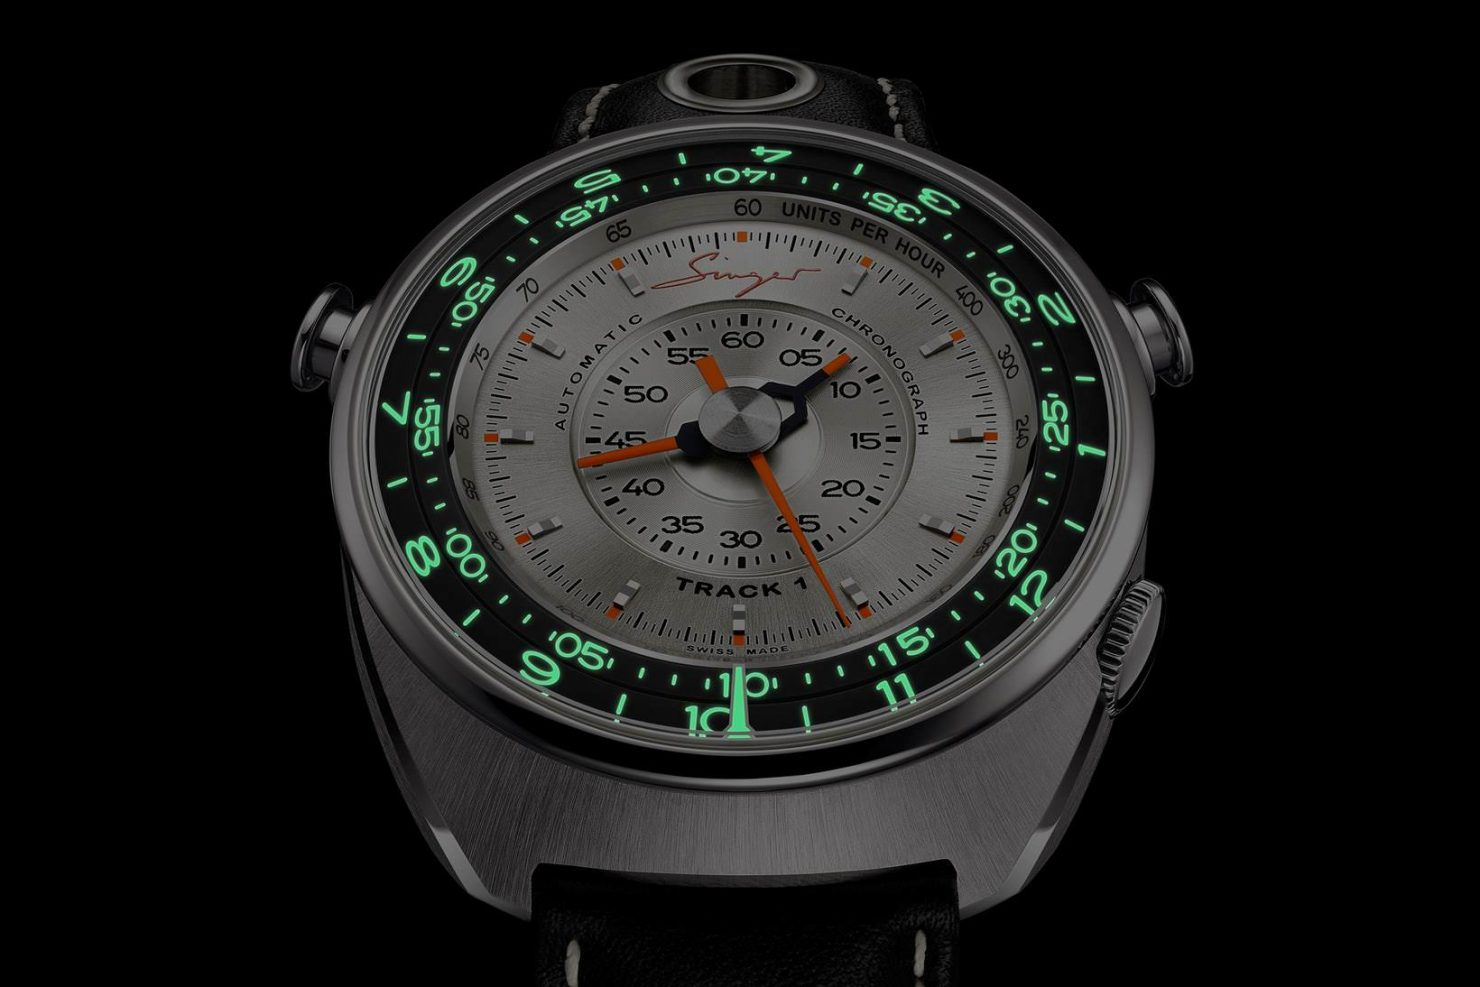 Singer Track1 Chronograph Luminescence 1480x987 - Singer Track1 Chronograph